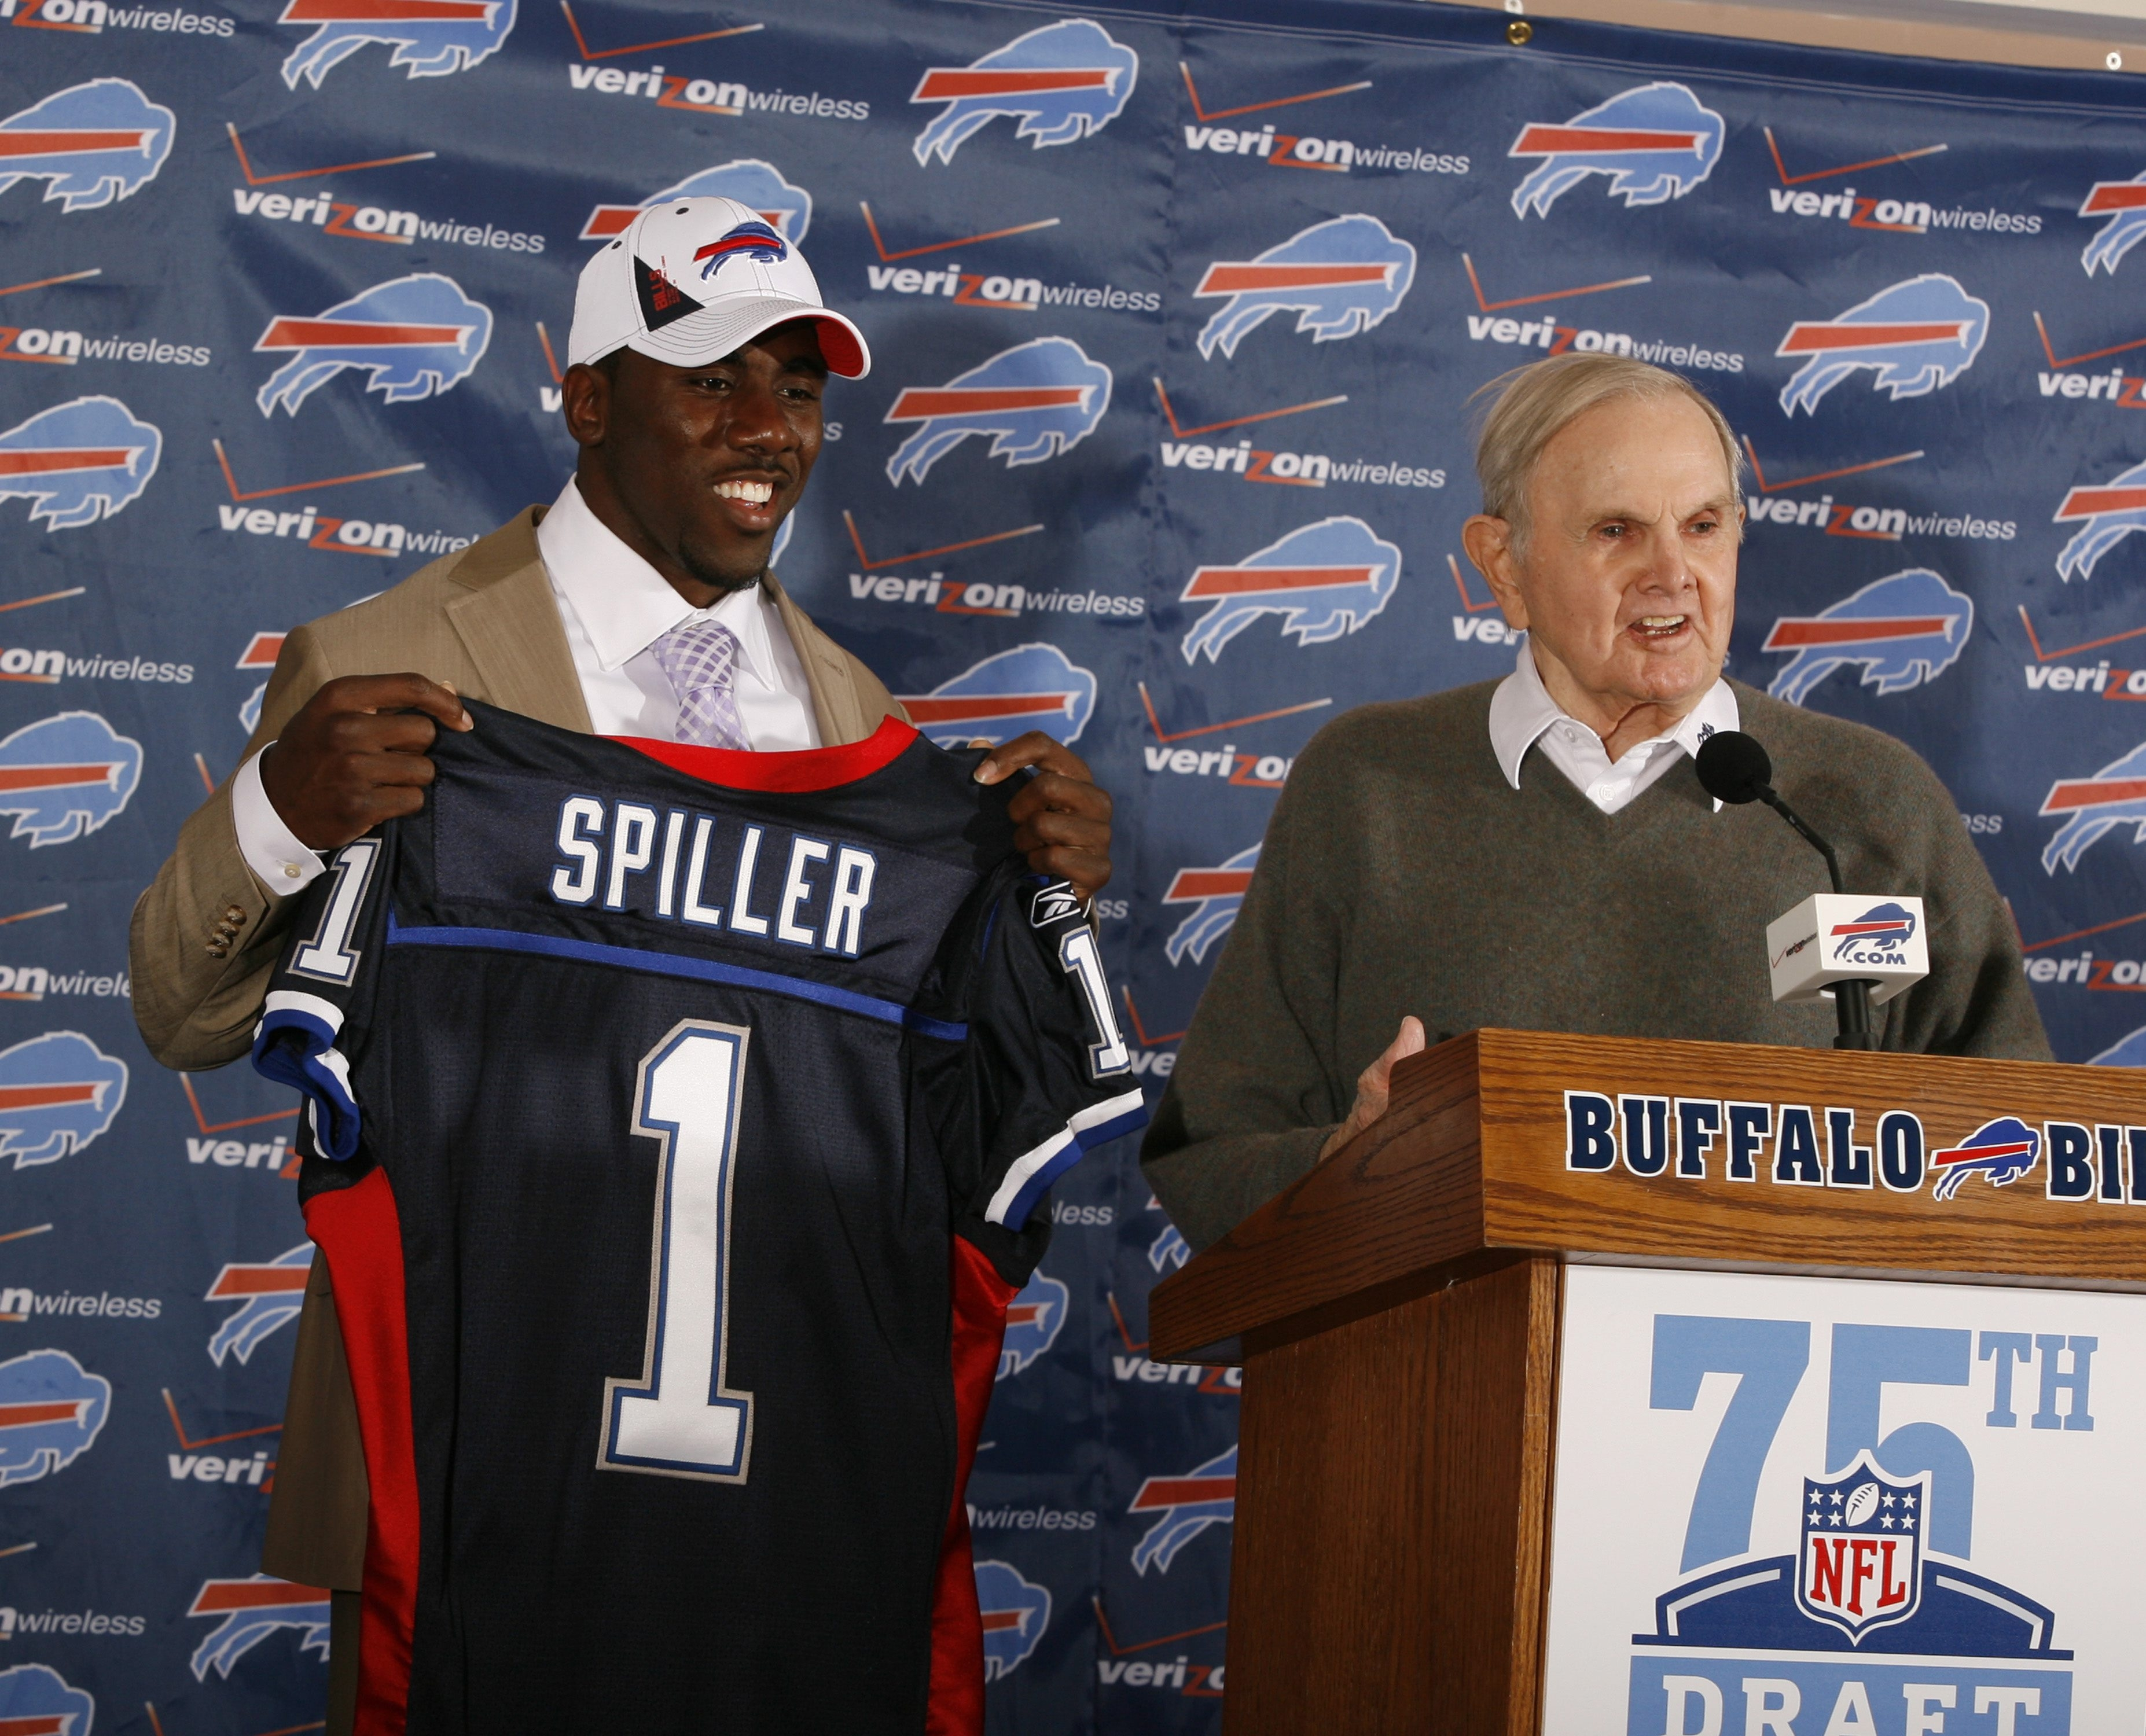 Running back C.J. Spiller was a surprise pick at ninth overall by the Bills in 2010, but he has turned into a very productive player. Nate Clements was taken 21st overall in 2001, one of five starters the Bills grabbed in the first three rounds. The cornerback from Ohio State has picked off  36 passes in his career and went to the 2004 Pro Bowl, but by choosing him the quarterback-needy Bills passed on Drew Brees, who went 11 picks later to San Diego.